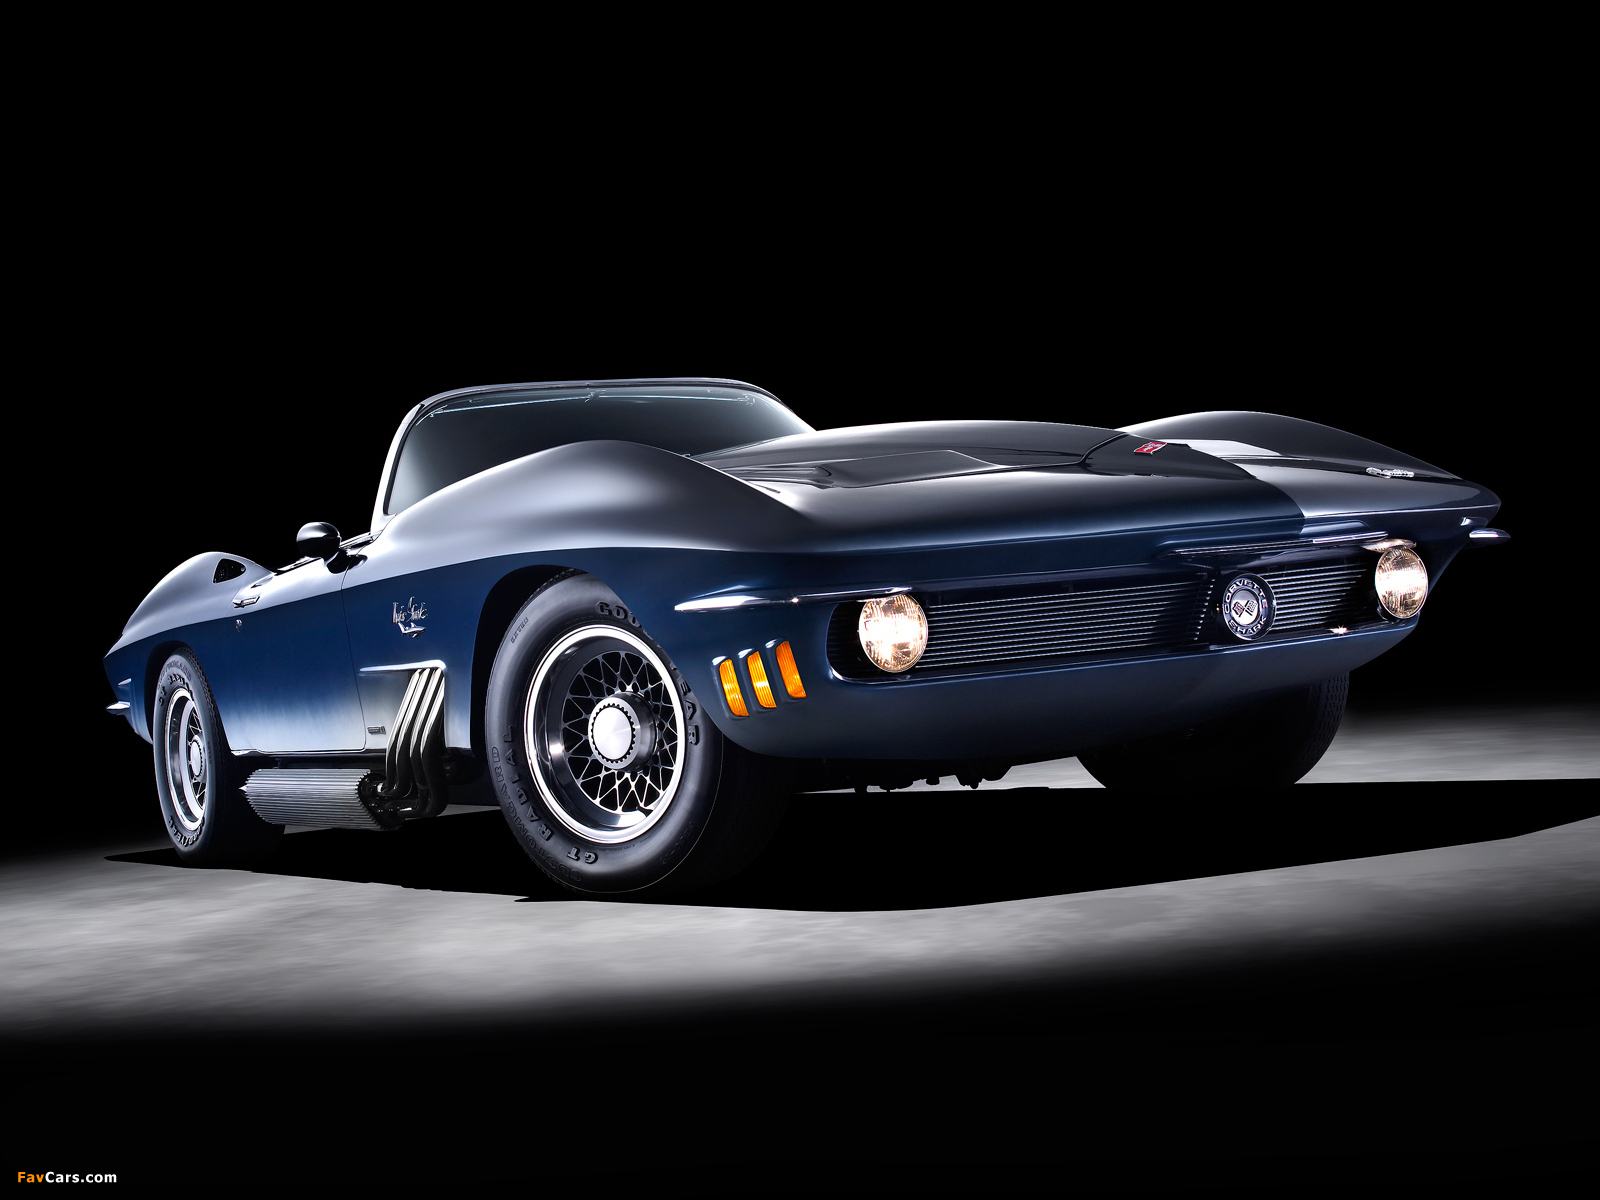 Corvette Mako Shark Concept Car 1962 Photos 1600x1200